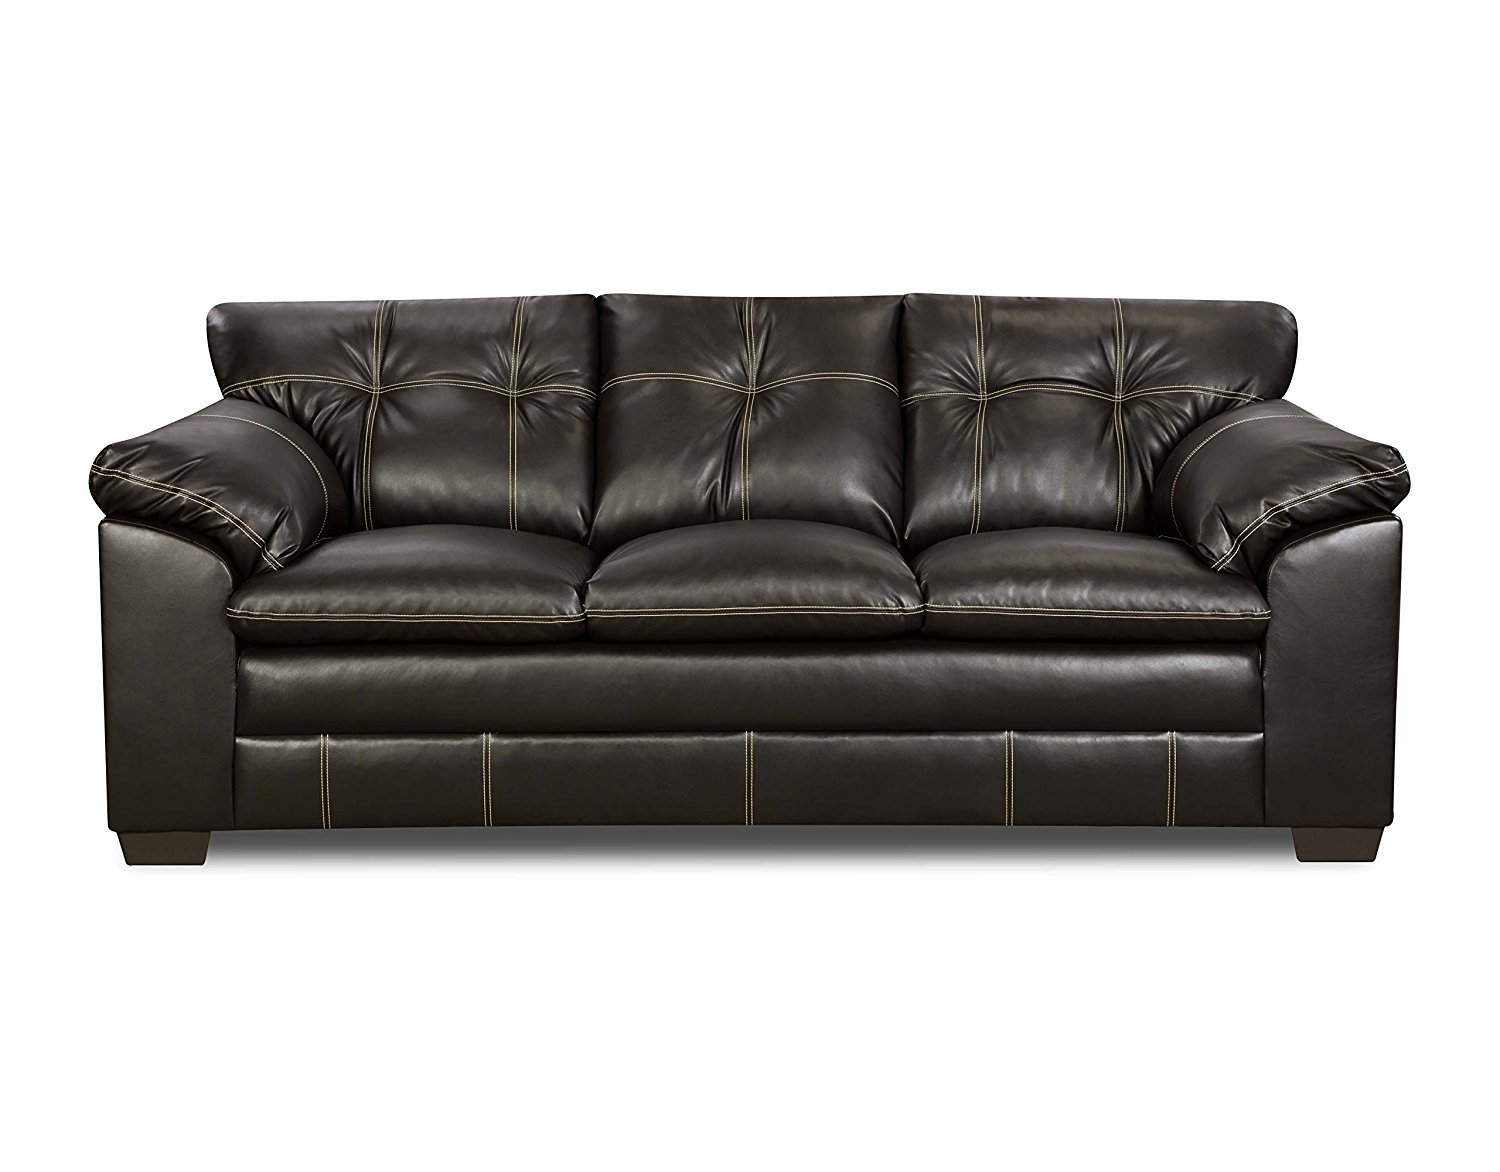 simmons blackjack cocoa reclining sofa and loveseat rv jack knife cover upholstery 6769 03 premier chocolate bonded